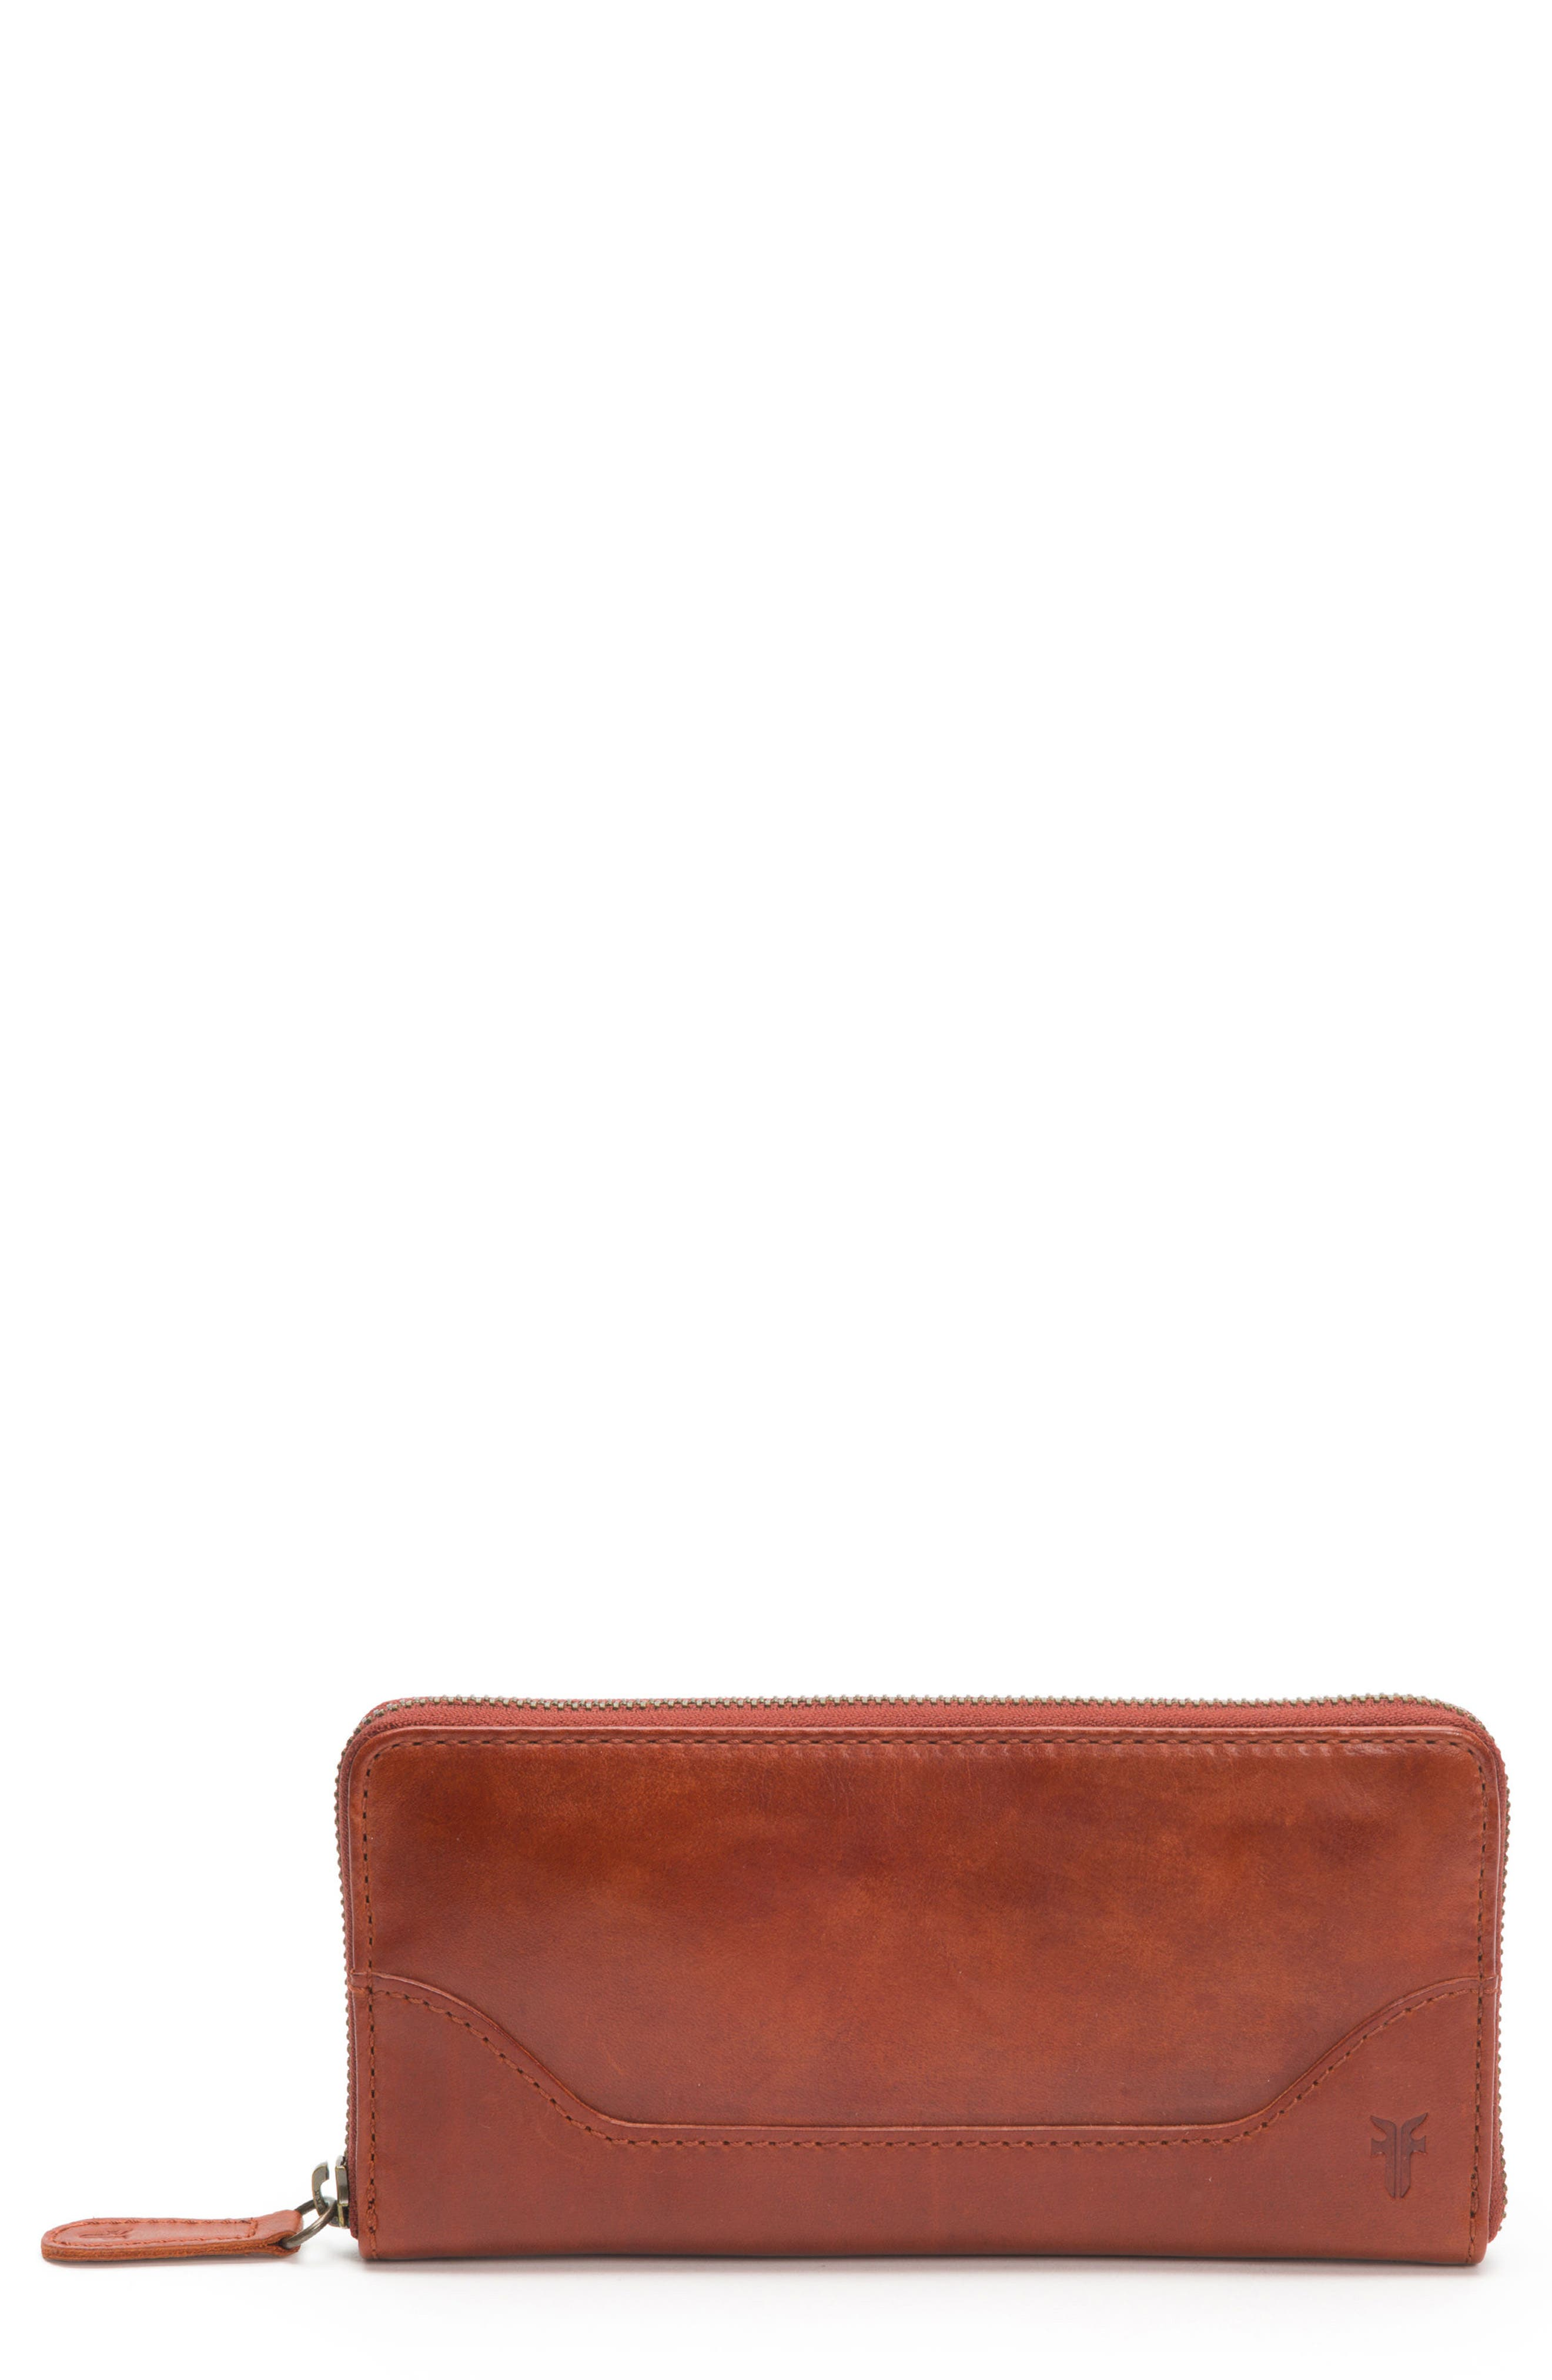 Melissa Leather Wallet,                             Main thumbnail 1, color,                             Red Clay